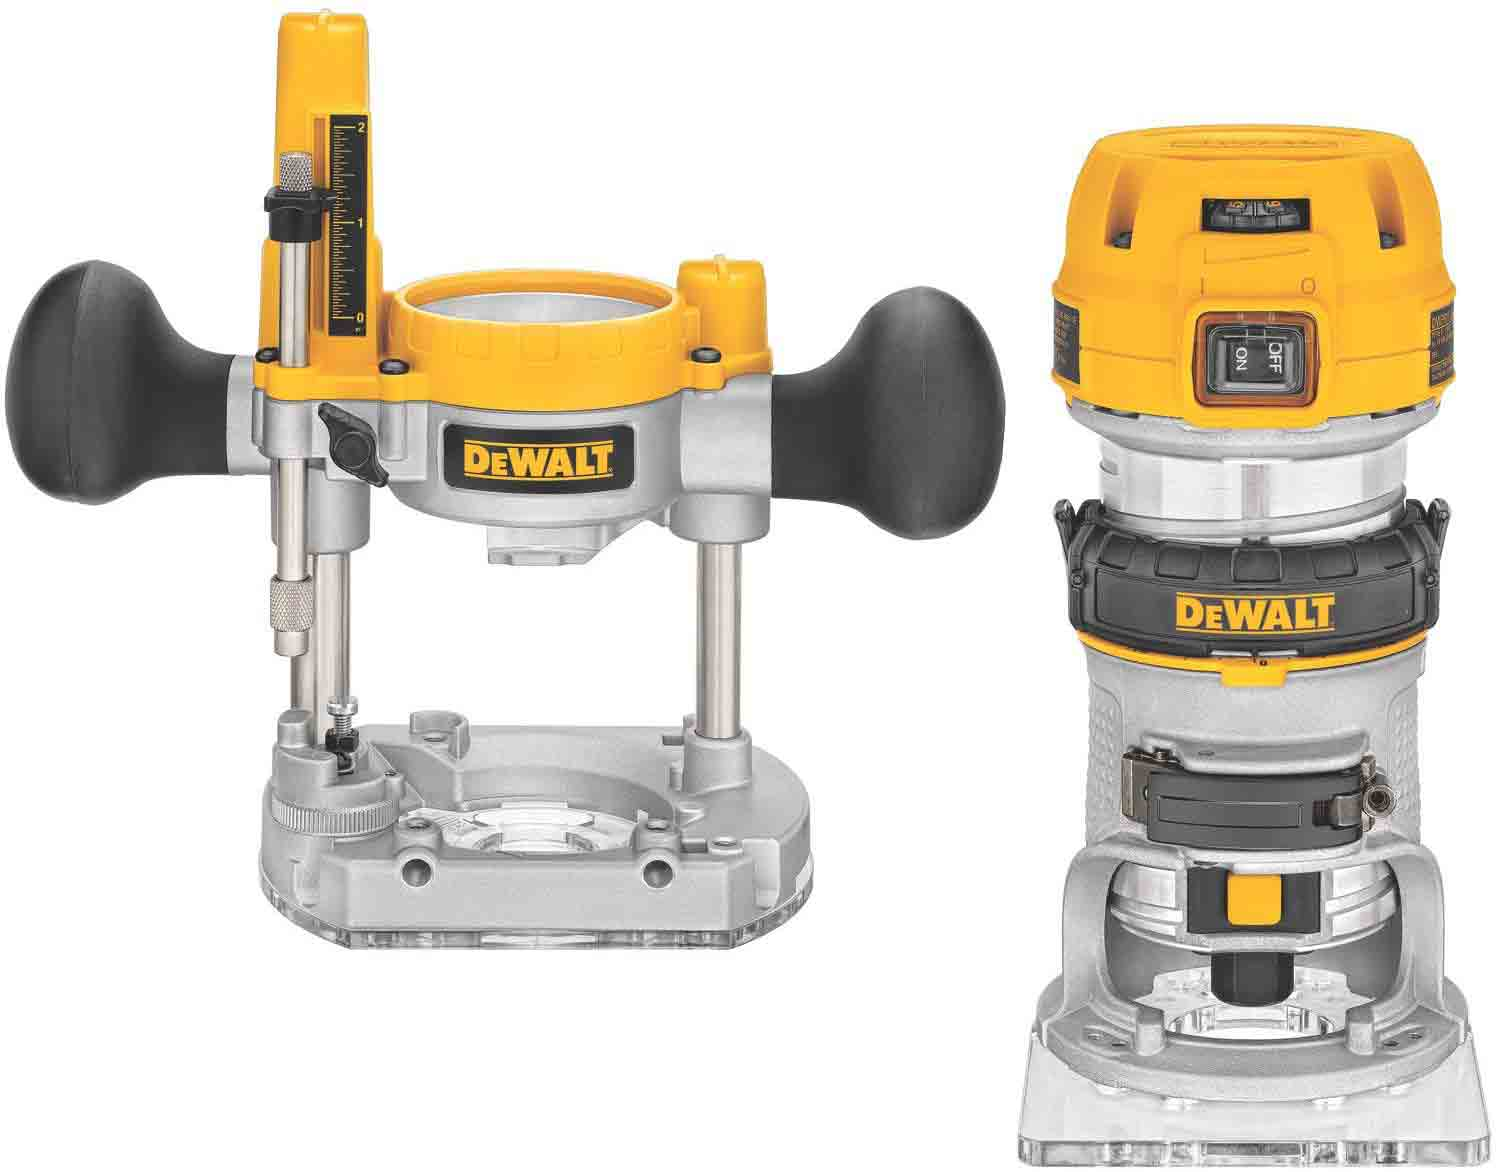 DEWALT-Router-Fixed-Plunge-Base-Kit,-Variable-Speed,-1